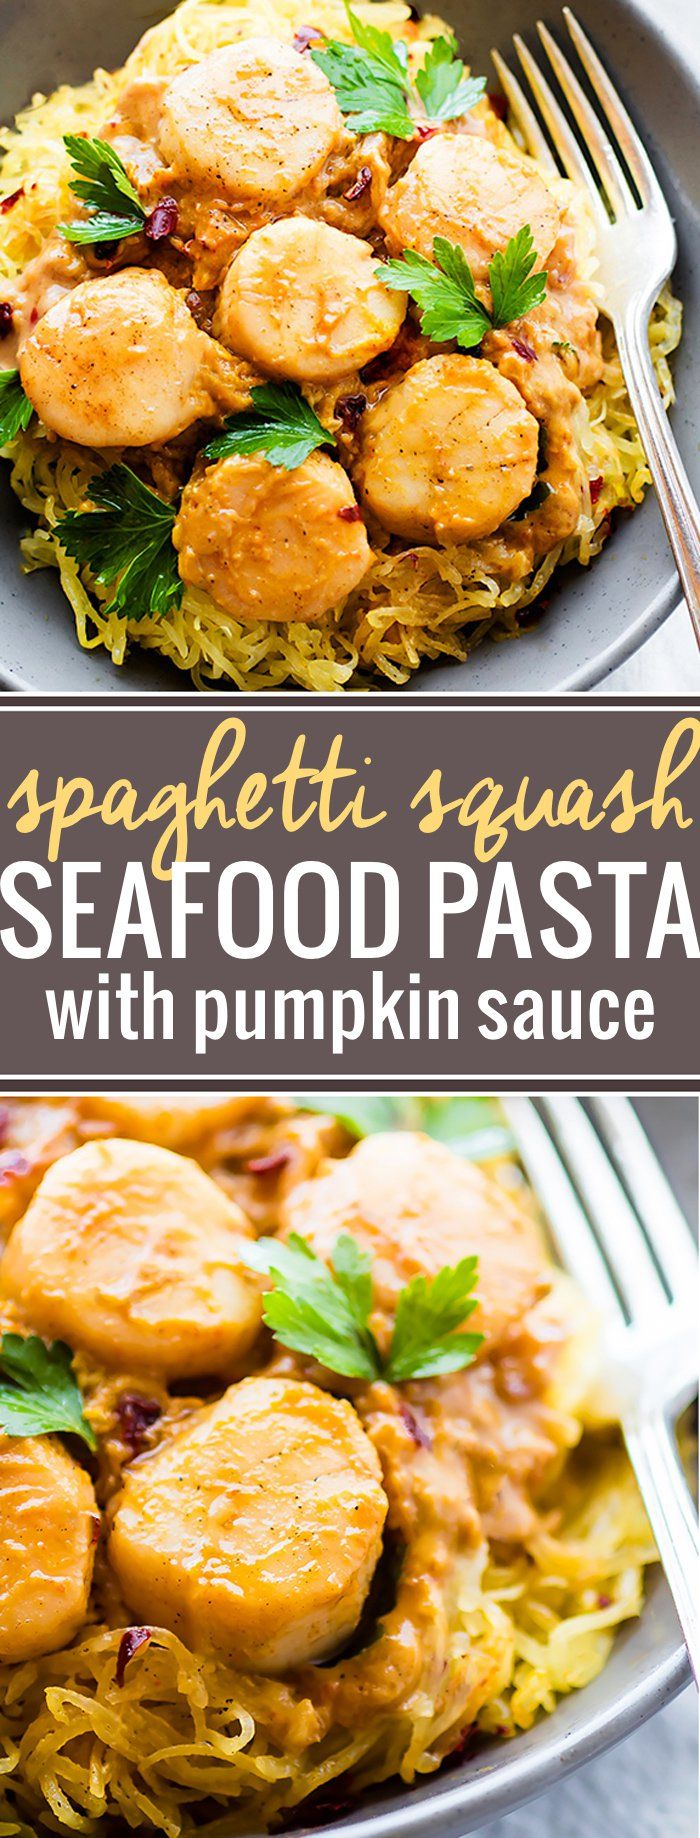 Paleo Seafood Pumpkin Spaghetti Squash Pasta! So good! It's topped with a miso pumpkin sauce and buttery scallops. A healthy lighter version of your favorite pasta dish.  http://cottercrunch.com